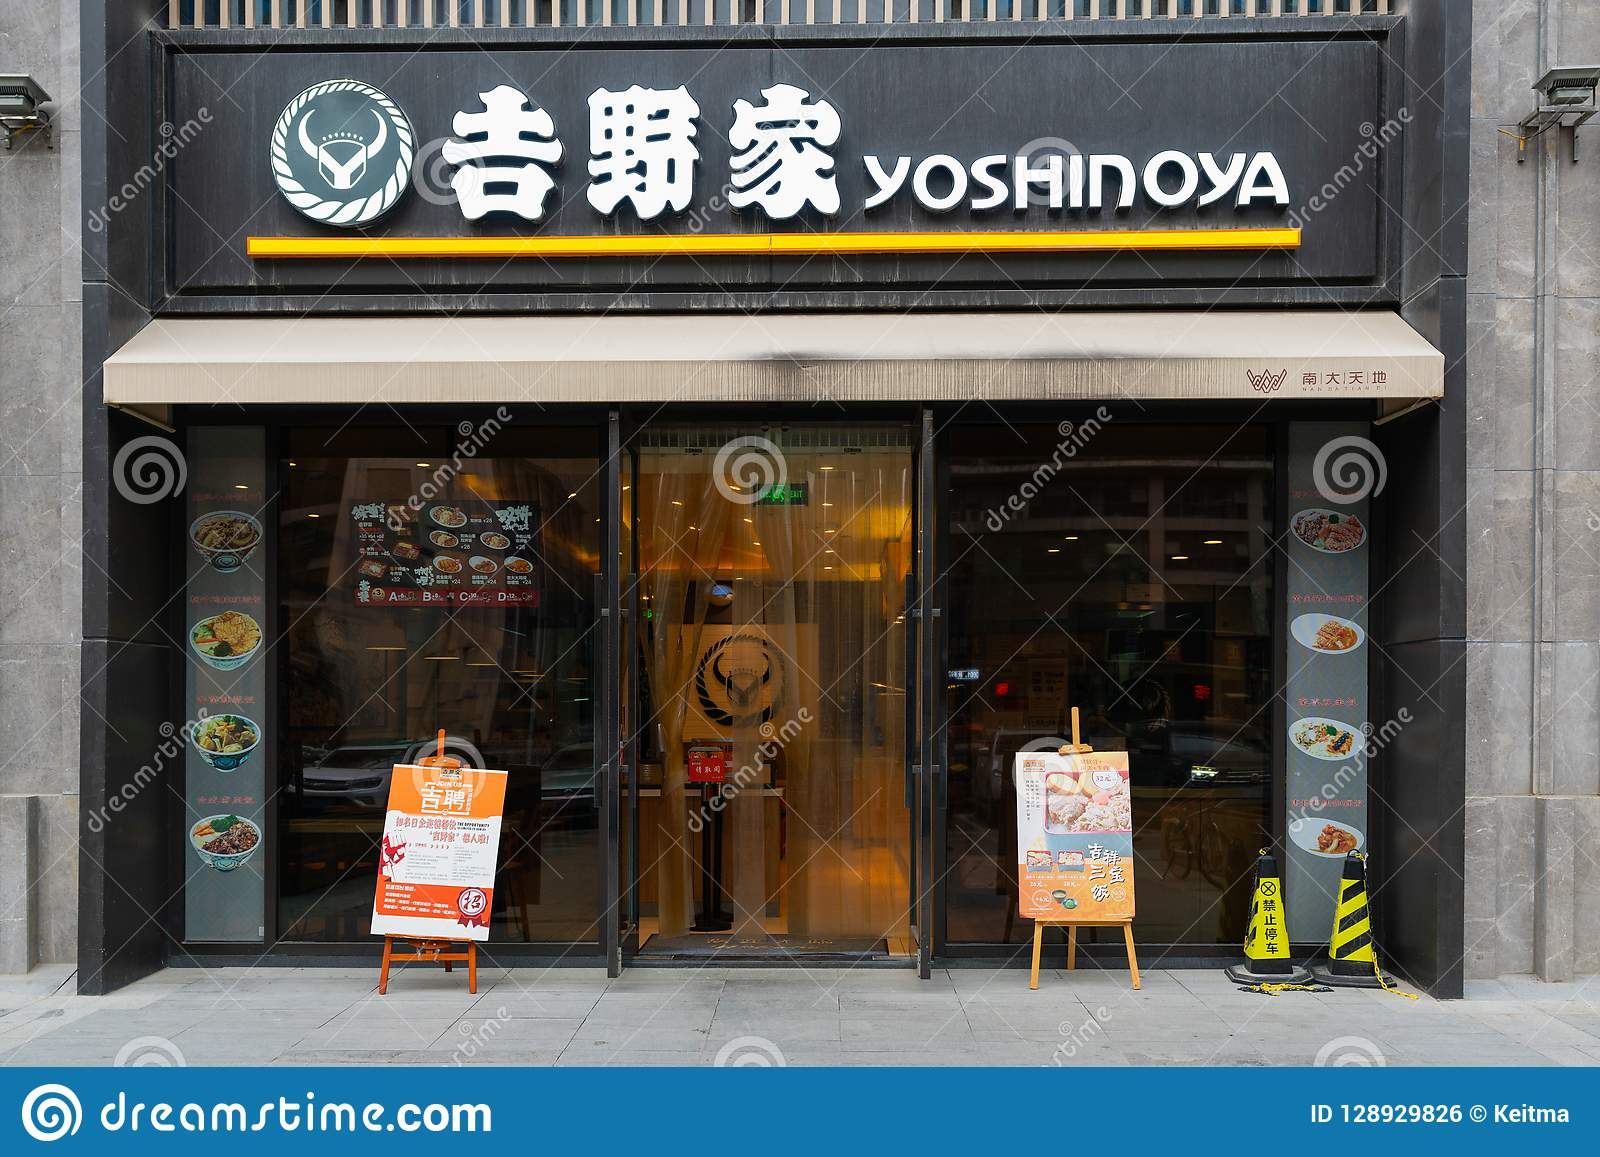 3 810 Exterior Fast Food Restaurant Photos Free Royalty Free Stock Photos From Dreamstime